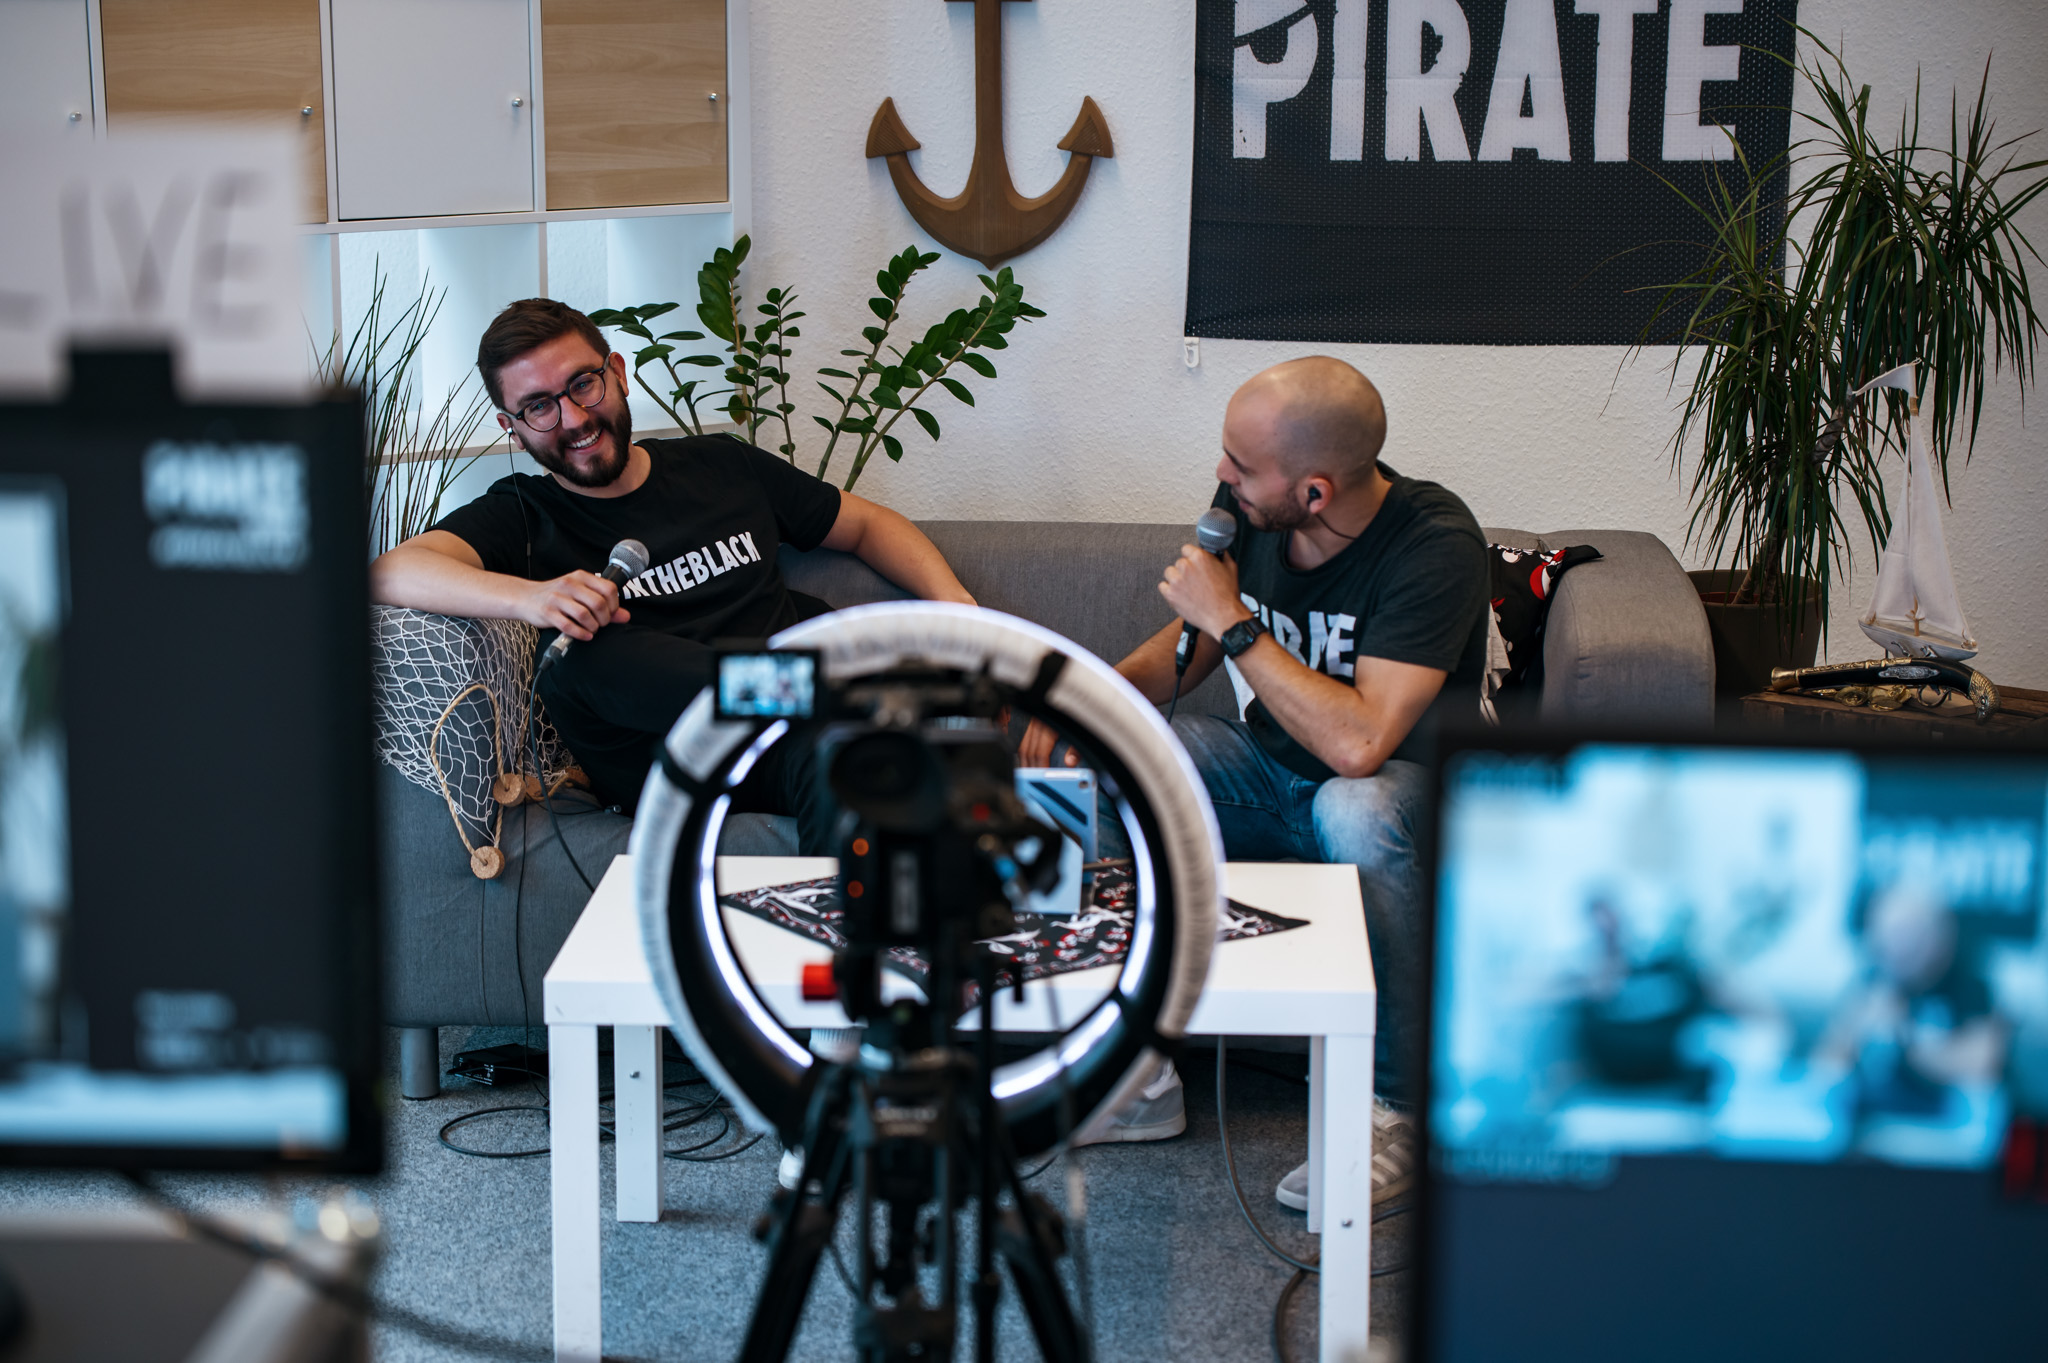 Behind the scene look to the PIRATEx Live - An online PIRATEx production